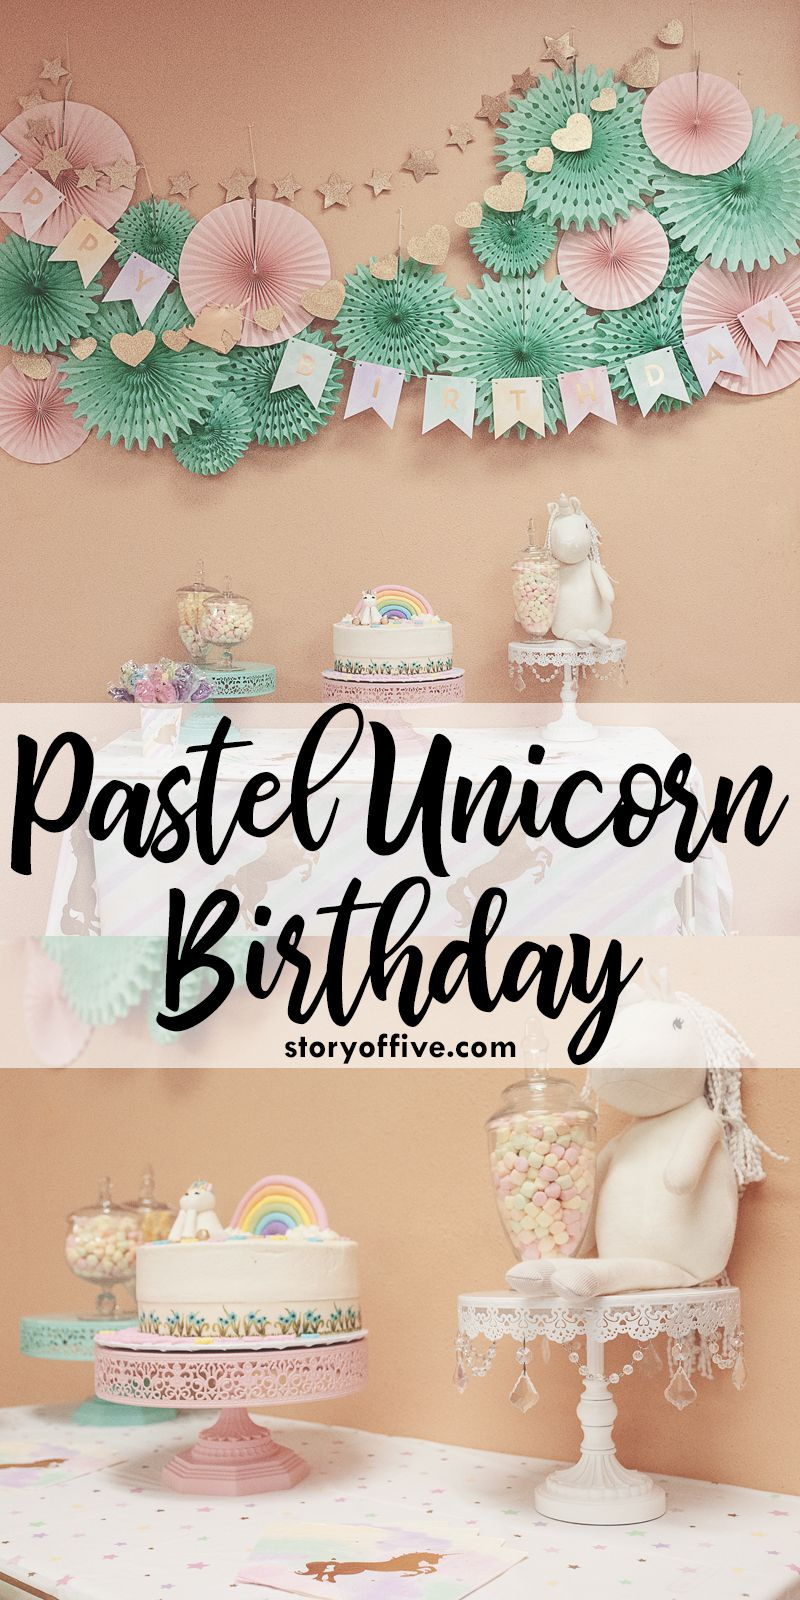 Unicorn Party Birthday Ideas Decor Pastel Gold San Antonio Venue Just Add Children Play Place Best Parties For Kids In